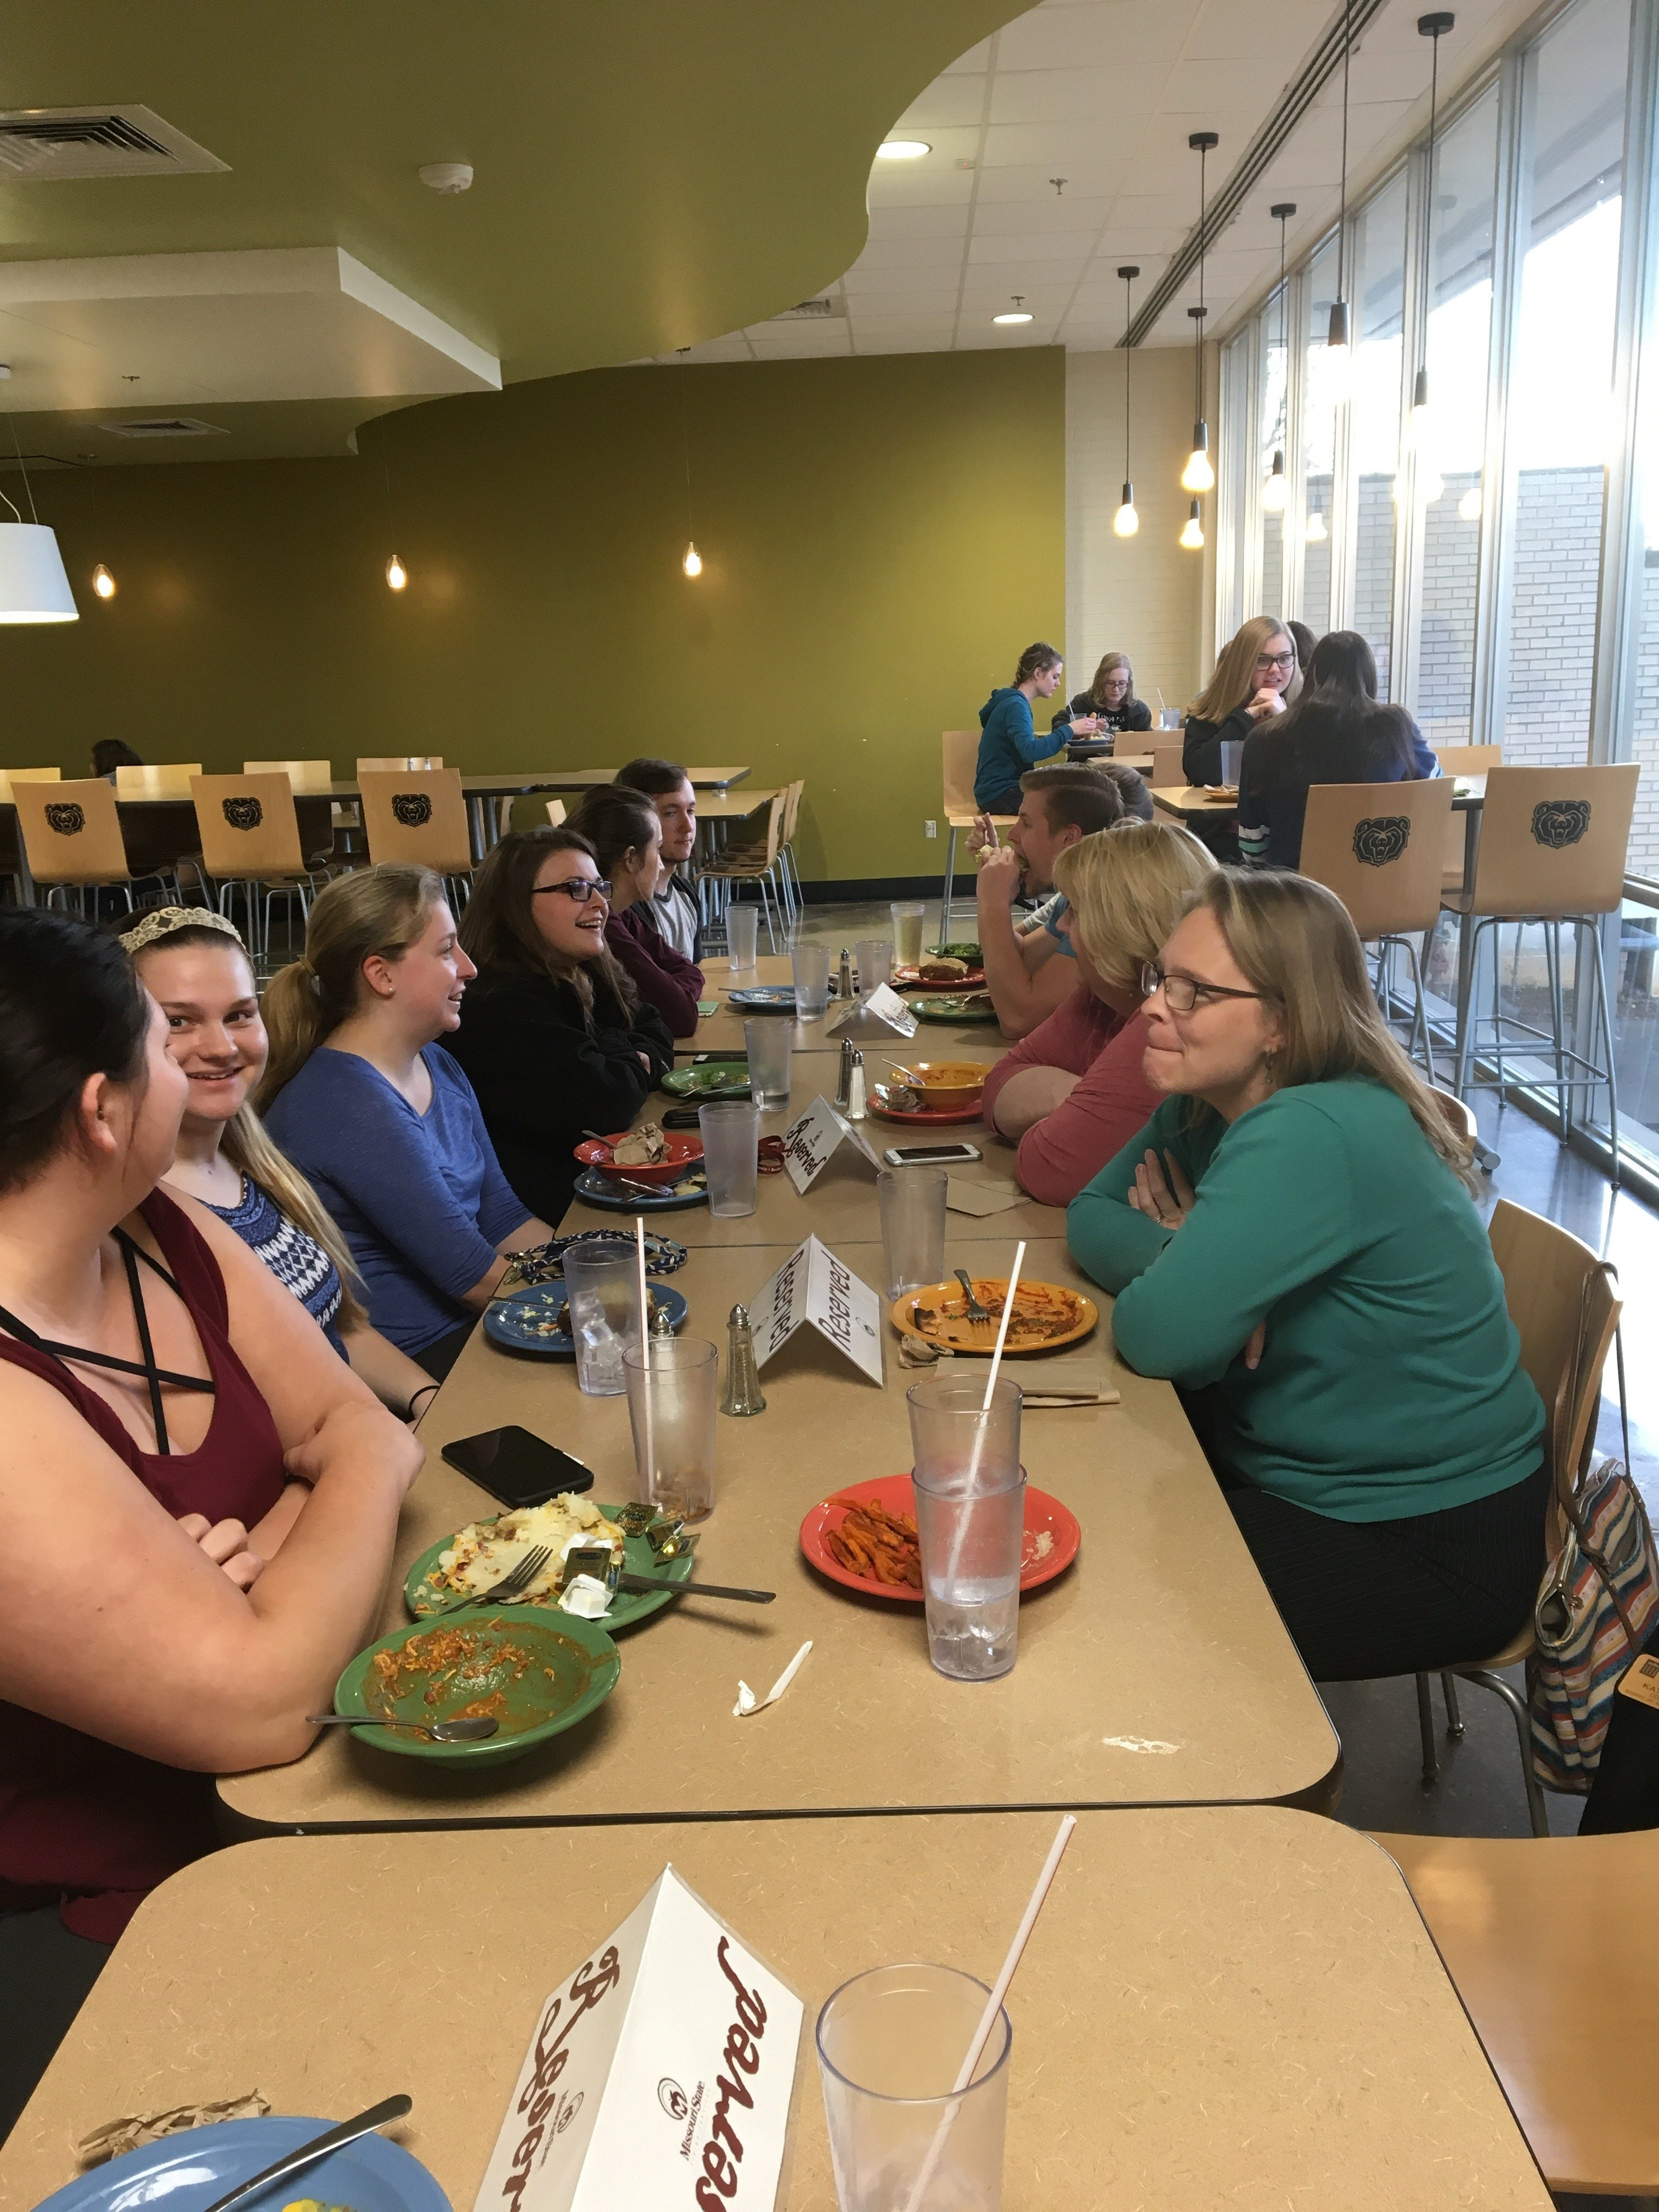 Future Health Care Professionals: Dinner with Faculty